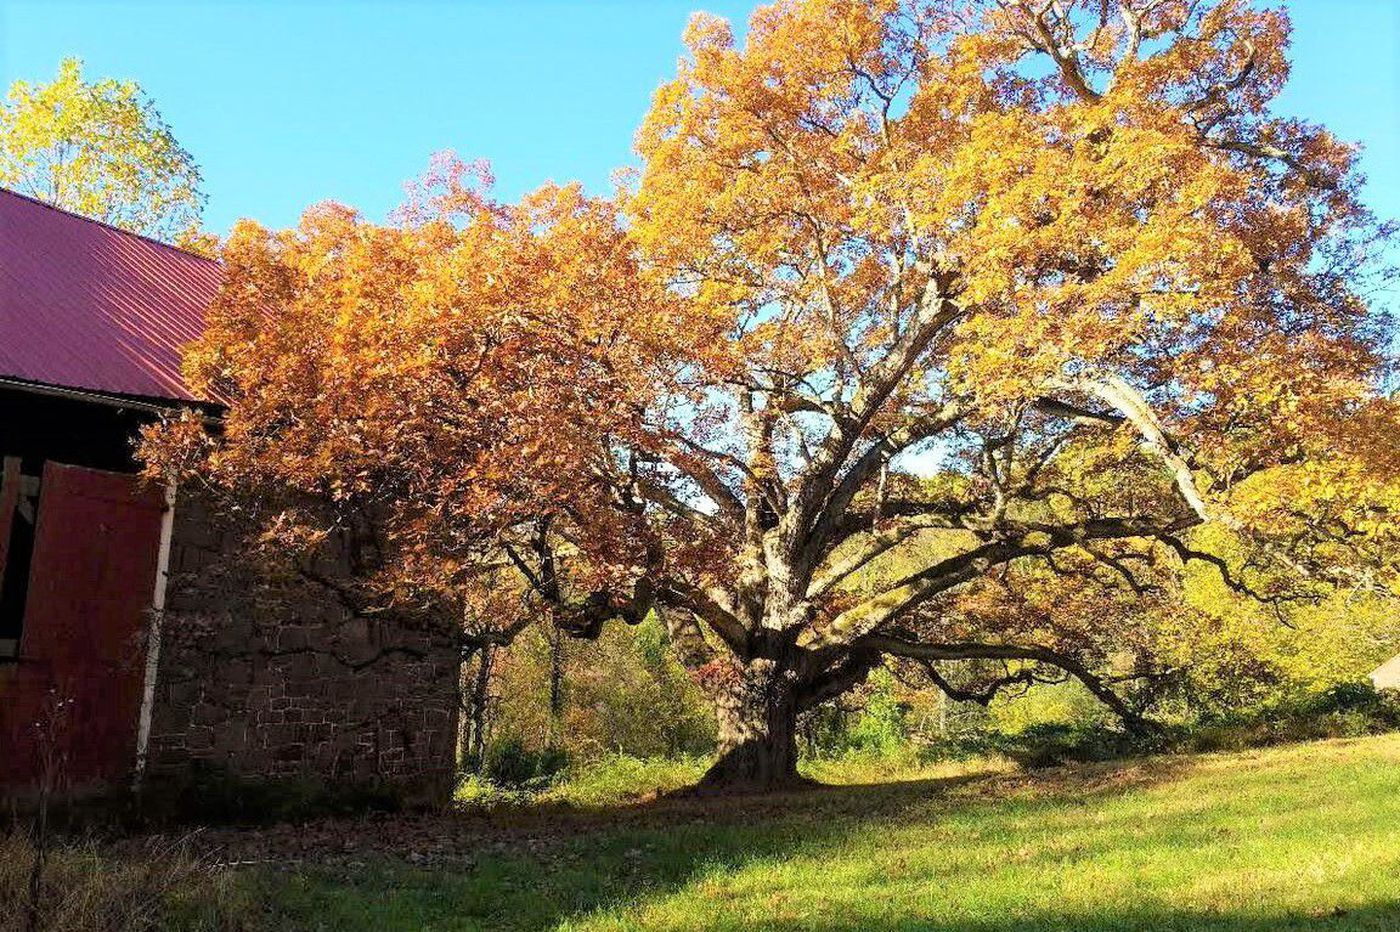 400-year-old 'William Penn' oak preserved, along with Chester County farm